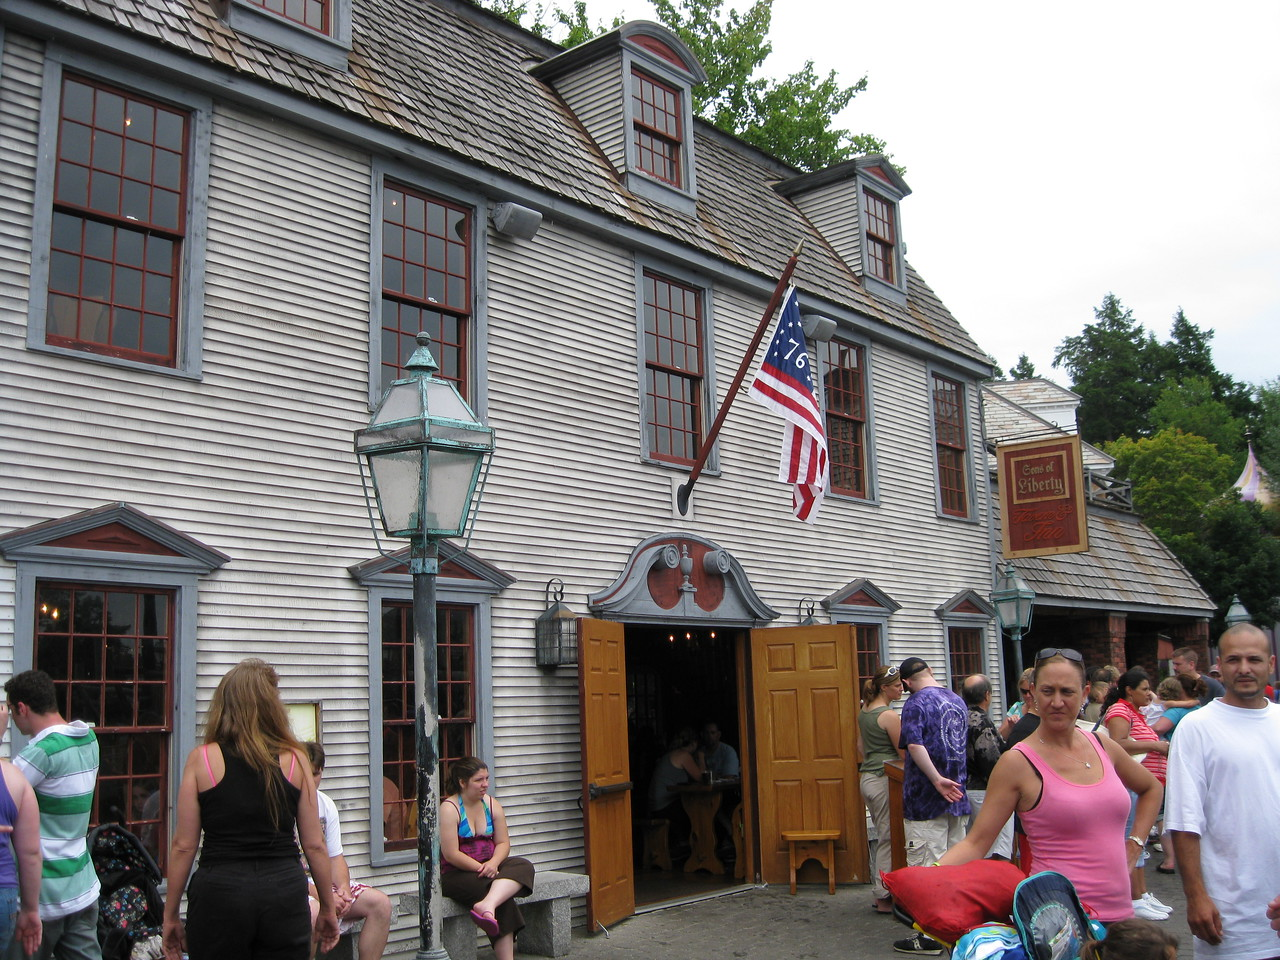 Sons of Liberty Tavern, my favorite attraction at Canobie Lake Park.